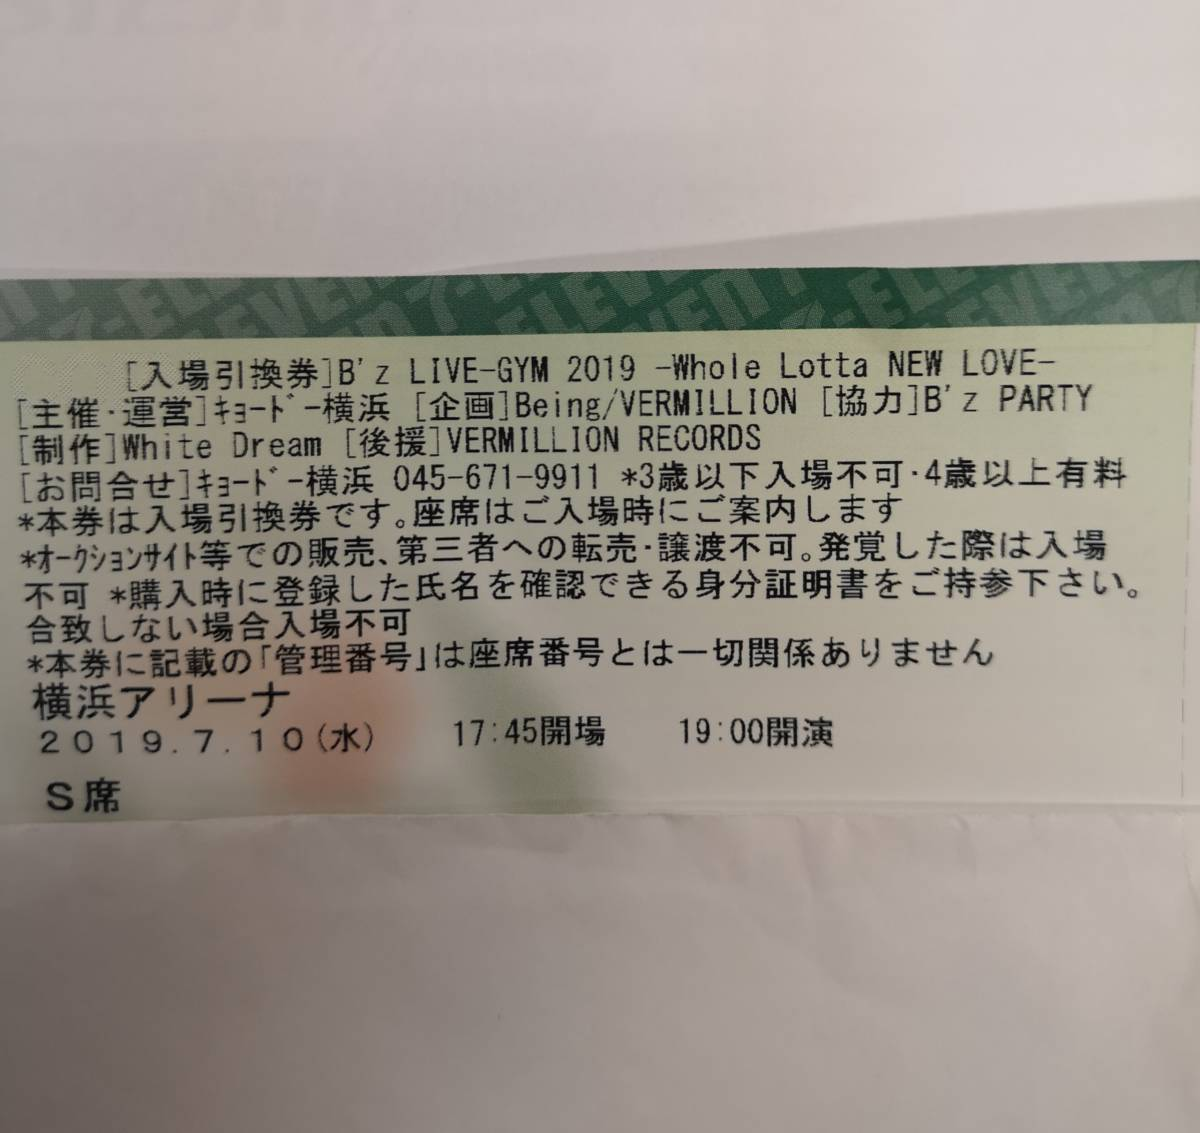 【7/10】S席チケット1枚■B'z LIVE-GYM 2019-Whole Lotta NEW LOVE■横浜アリーナ7月10日(水)